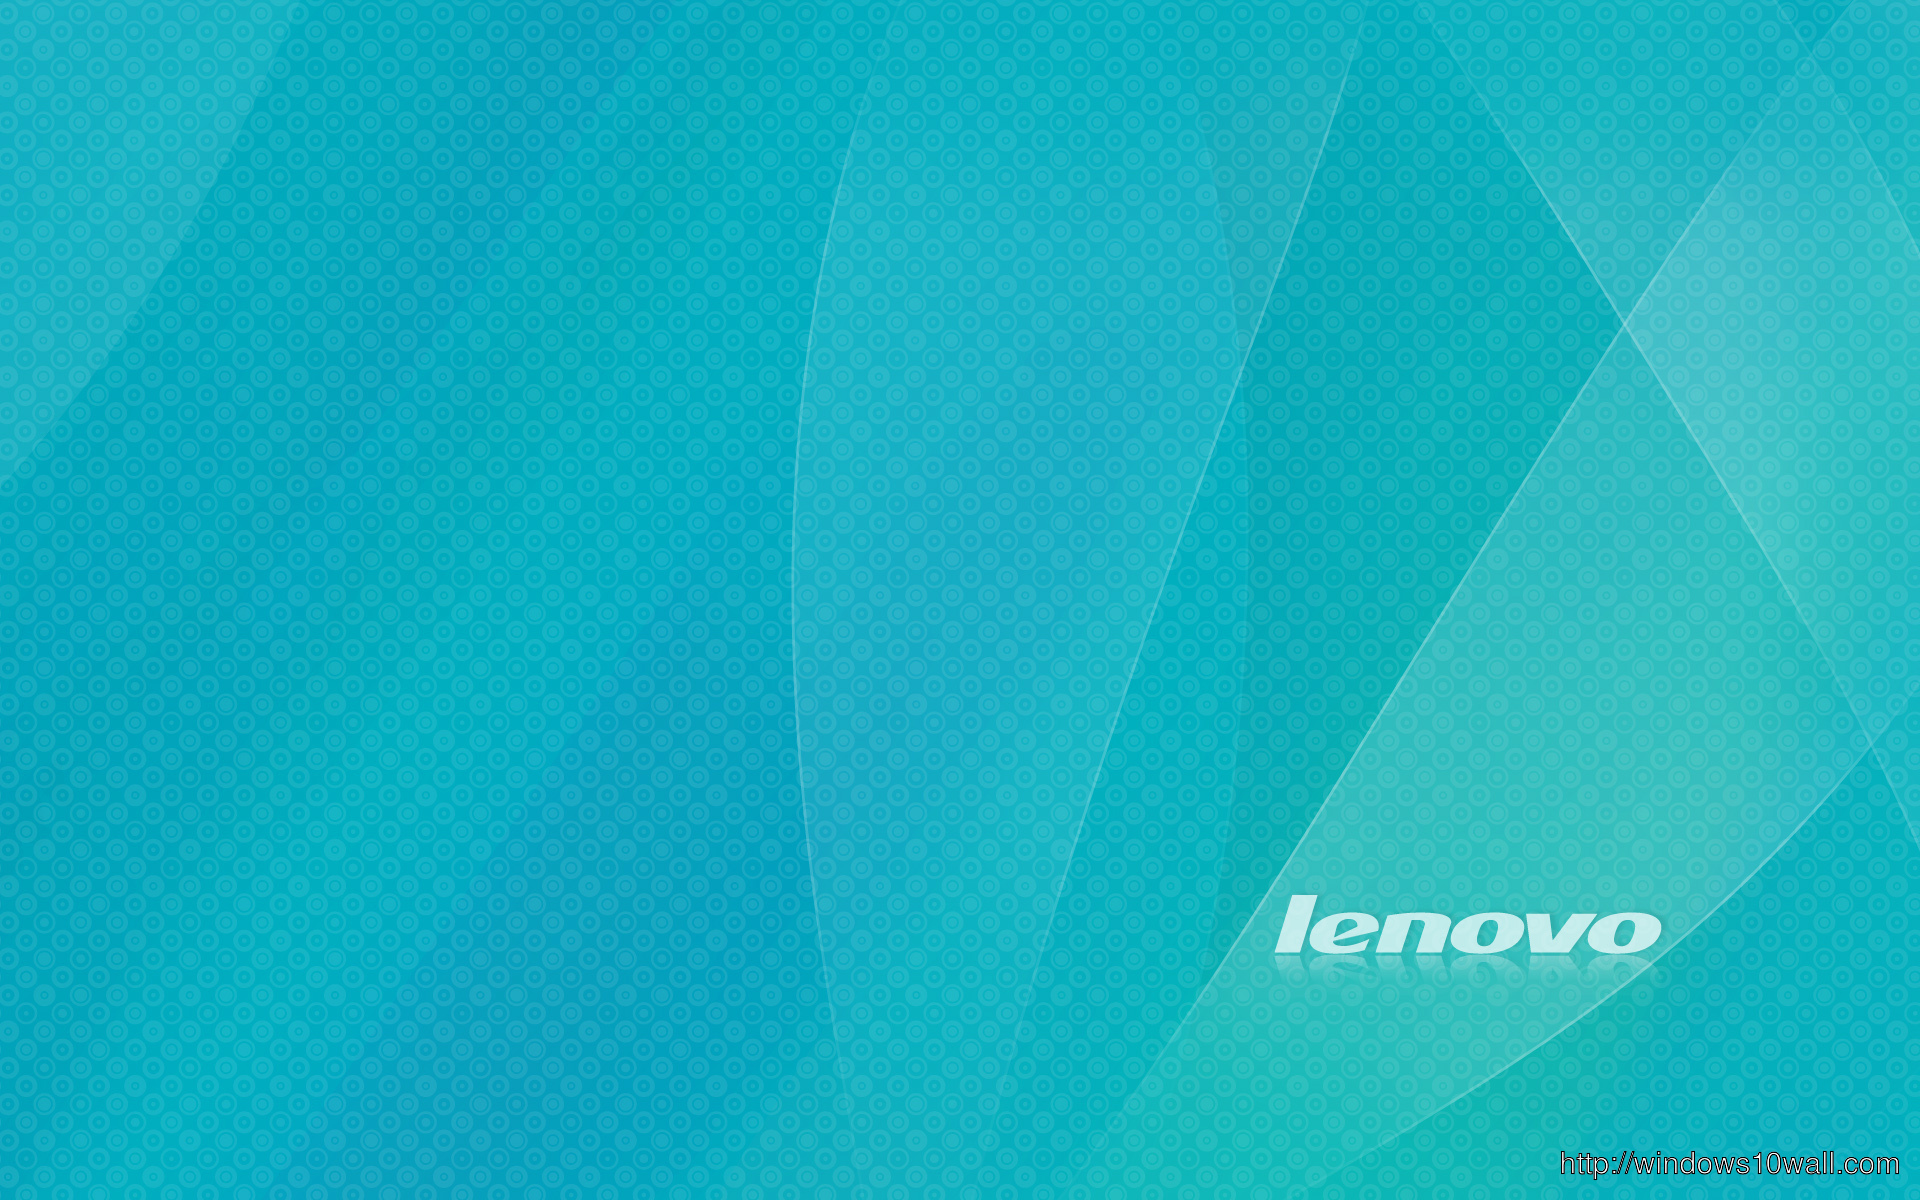 Windows 7 Style Lenovo Background Wallpaper